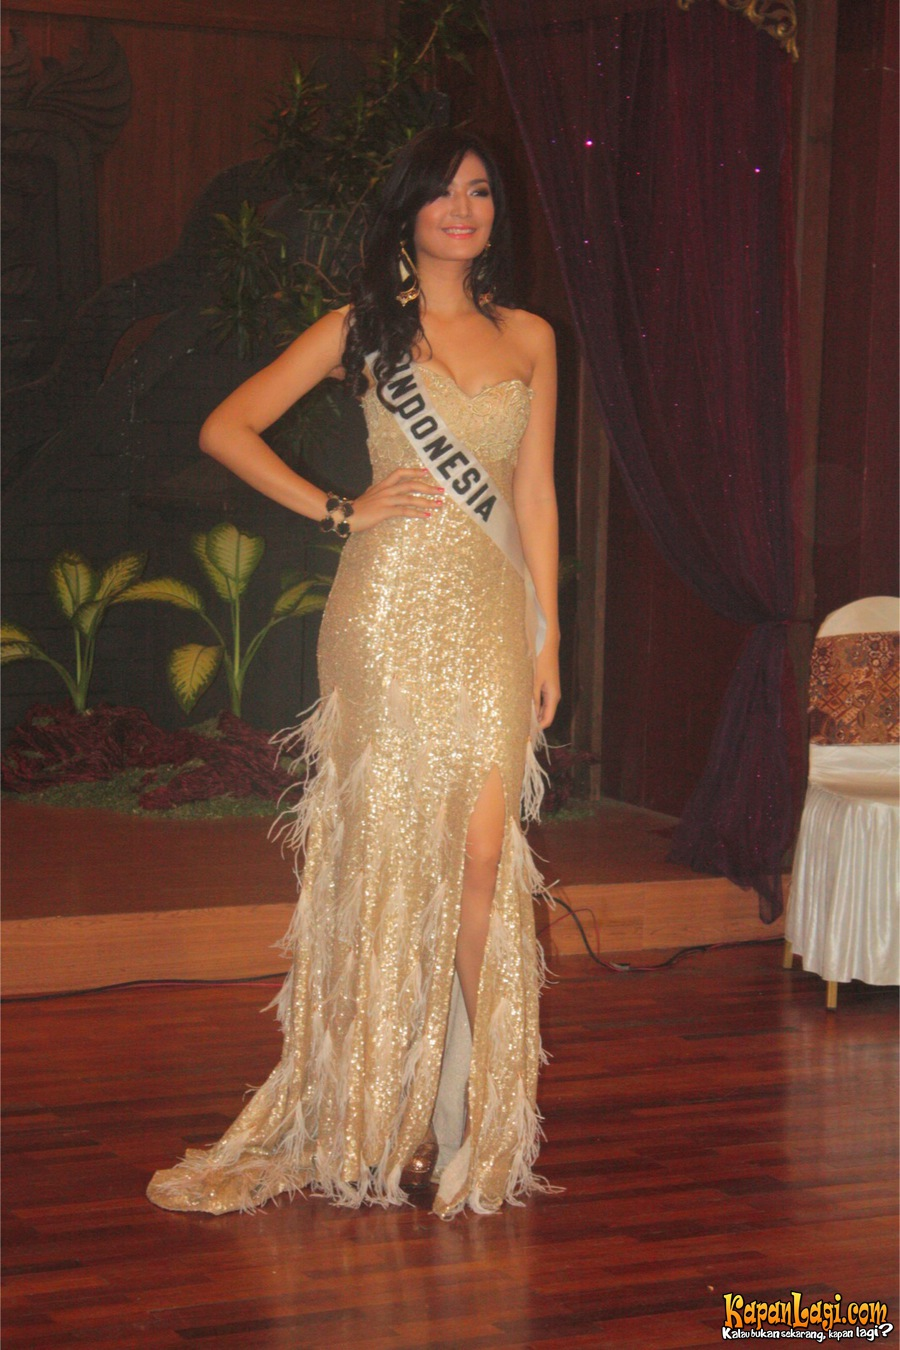 Download image Maria Selena Foto Miss Universe PC, Android, iPhone and ...